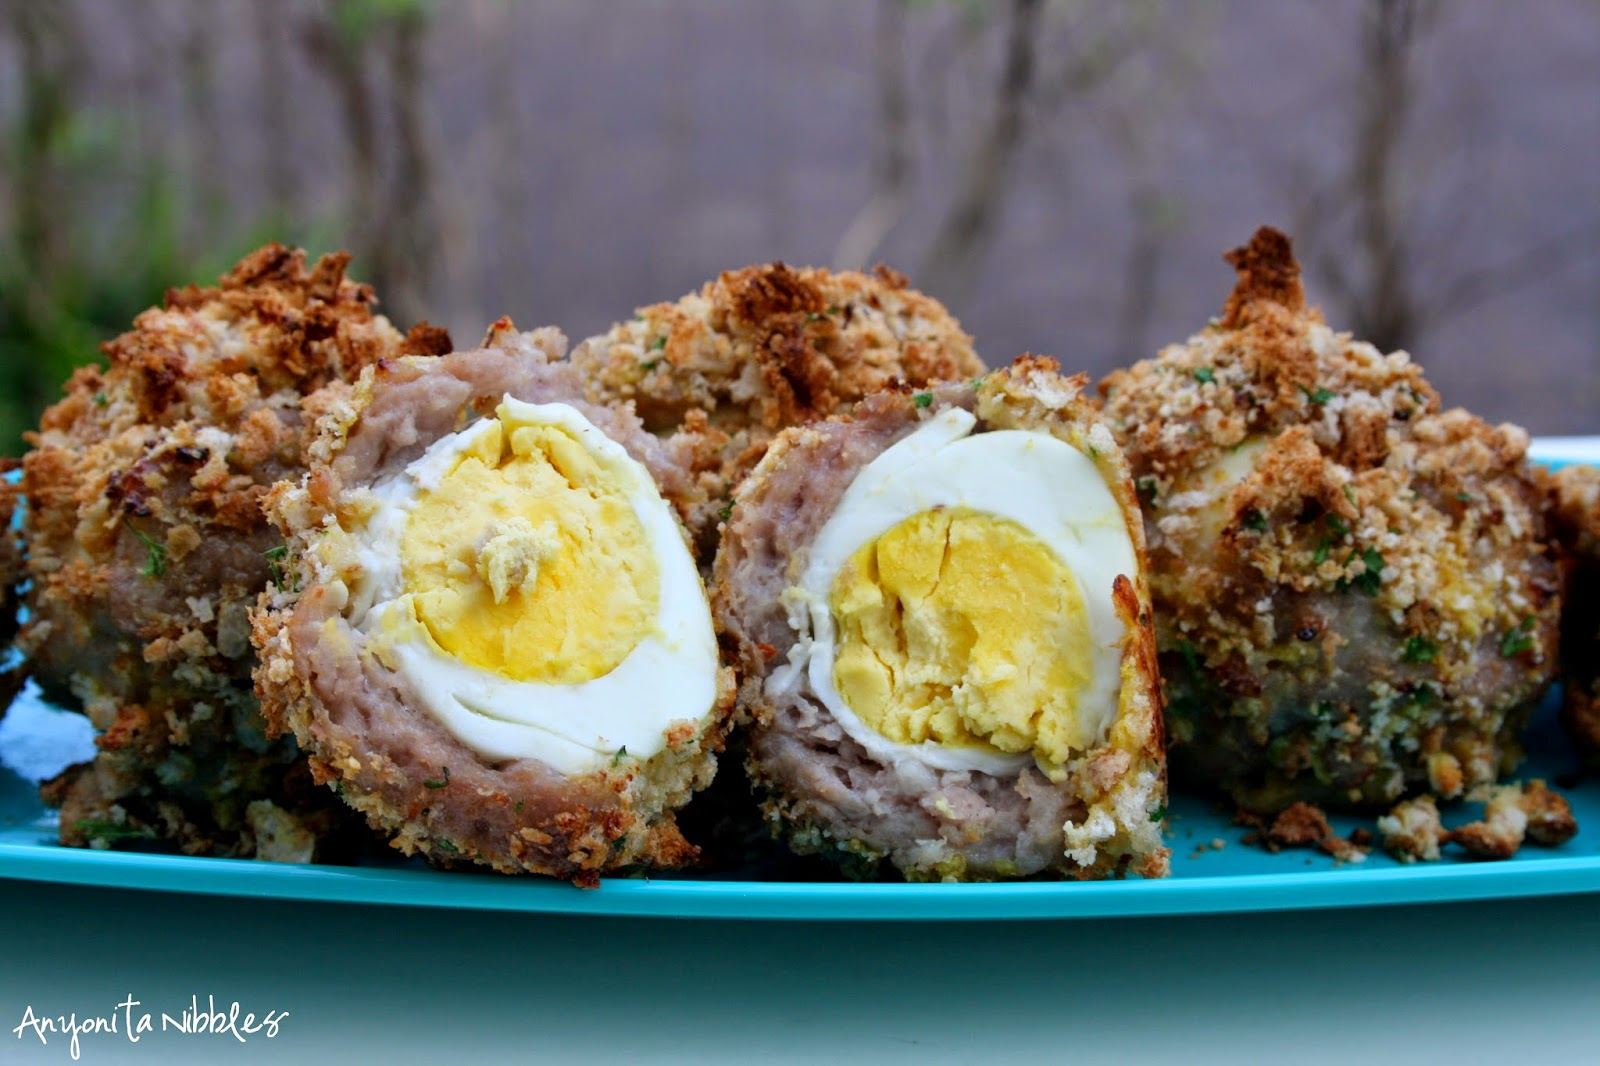 A Scotch egg is a boiled egg wrapped in sausage and breadcrumbs from Anyonita Nibbles